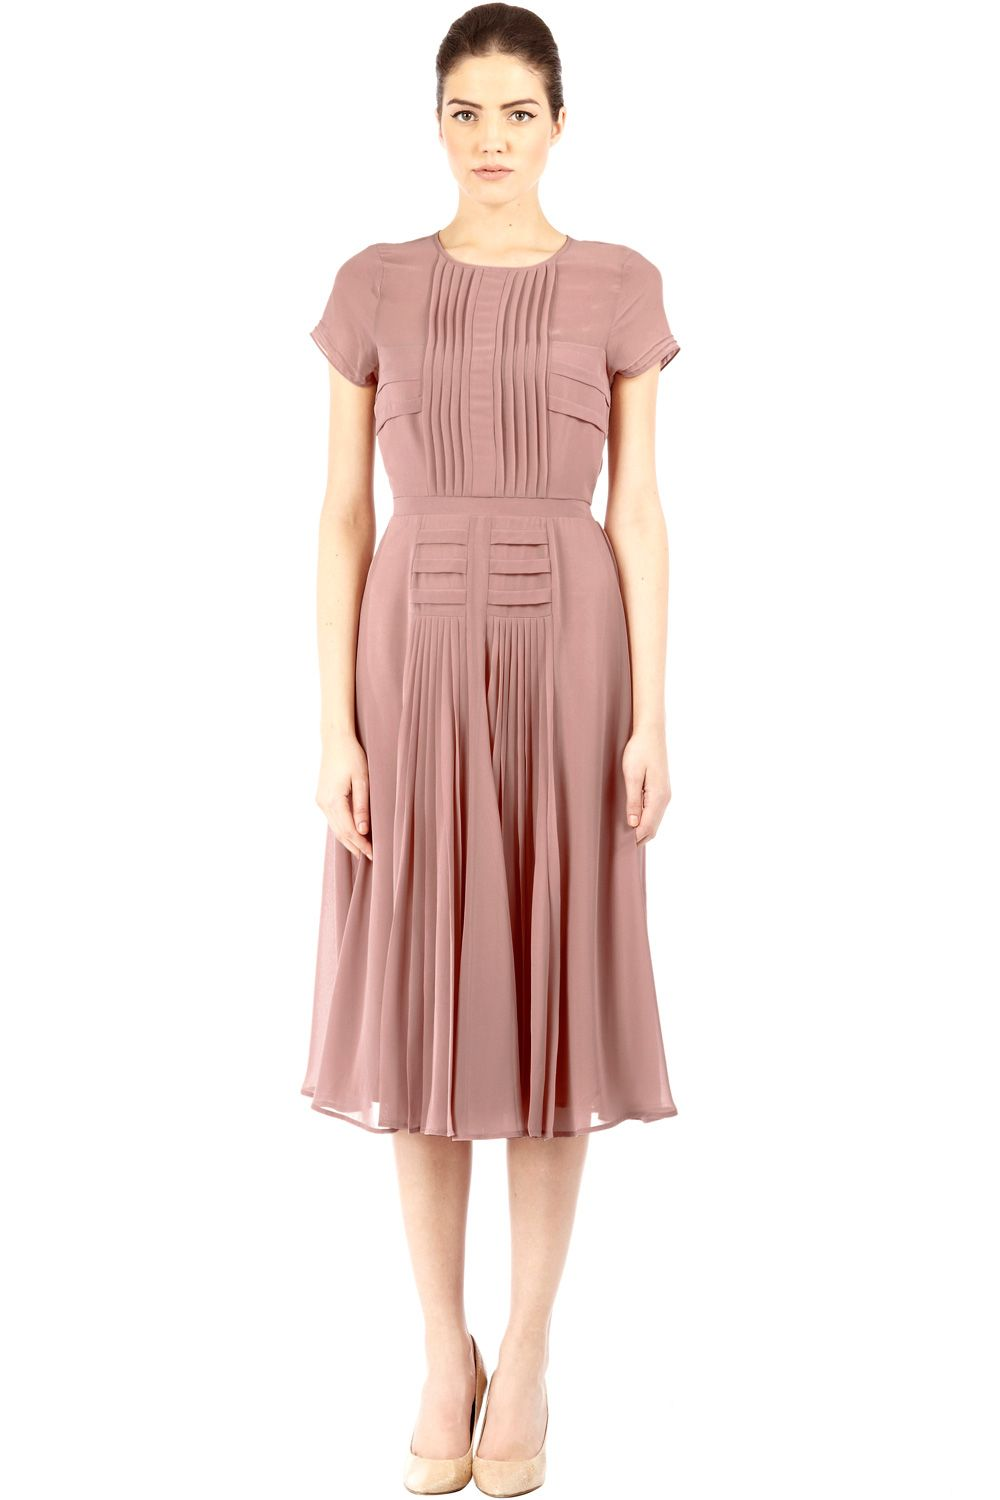 Nude | Pink Pleated Bodice Skirt Midi Dress. | Warehouse | Shop Love ...